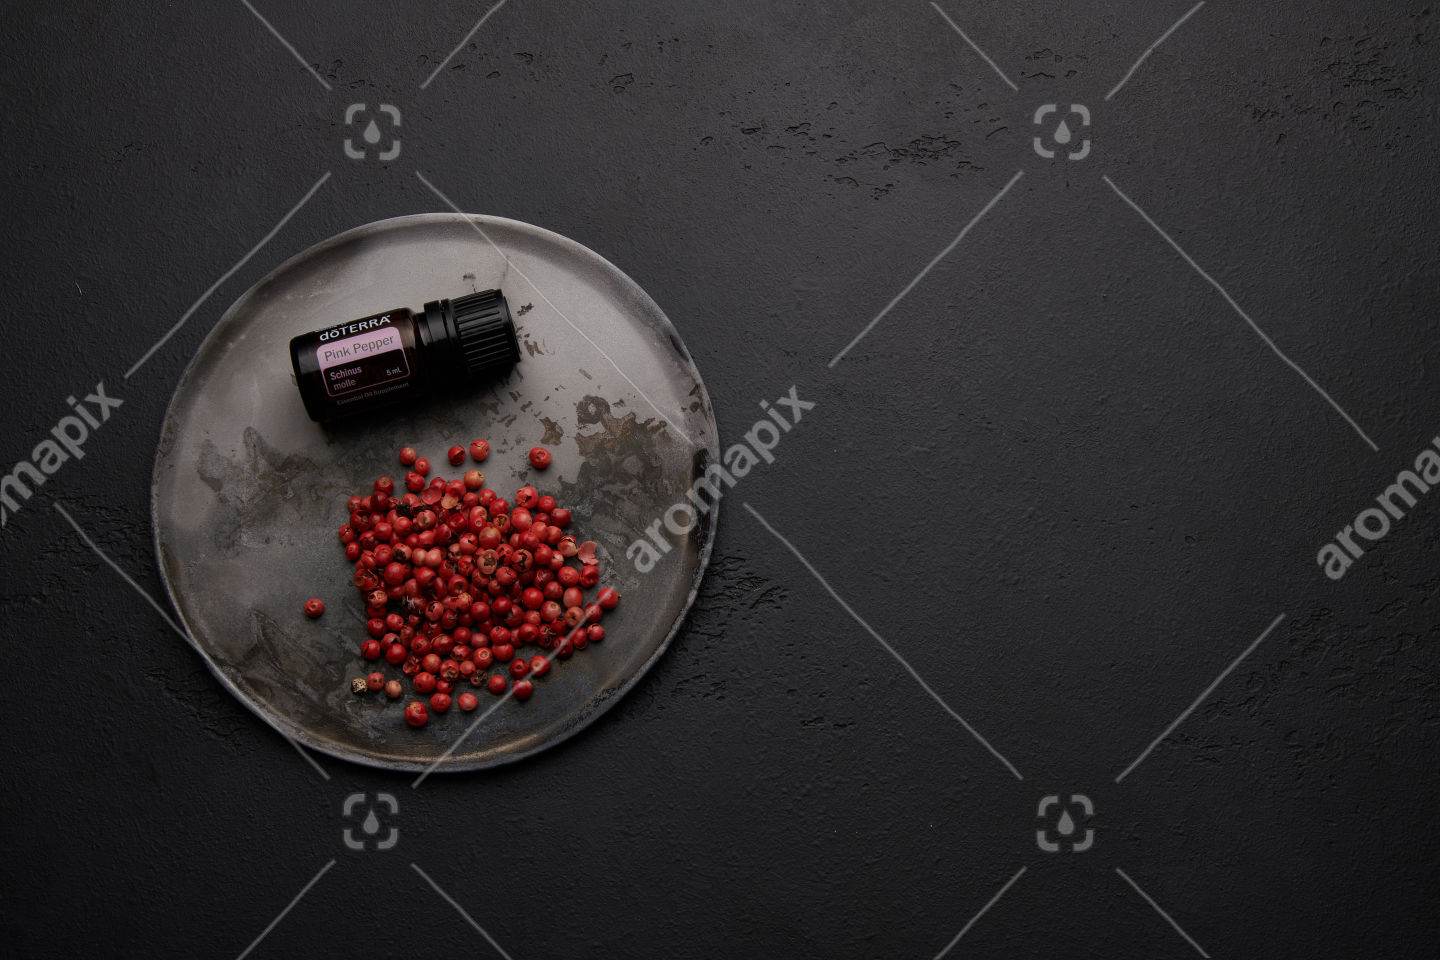 doTERRA Pink Pepper with pink peppercorns on black background